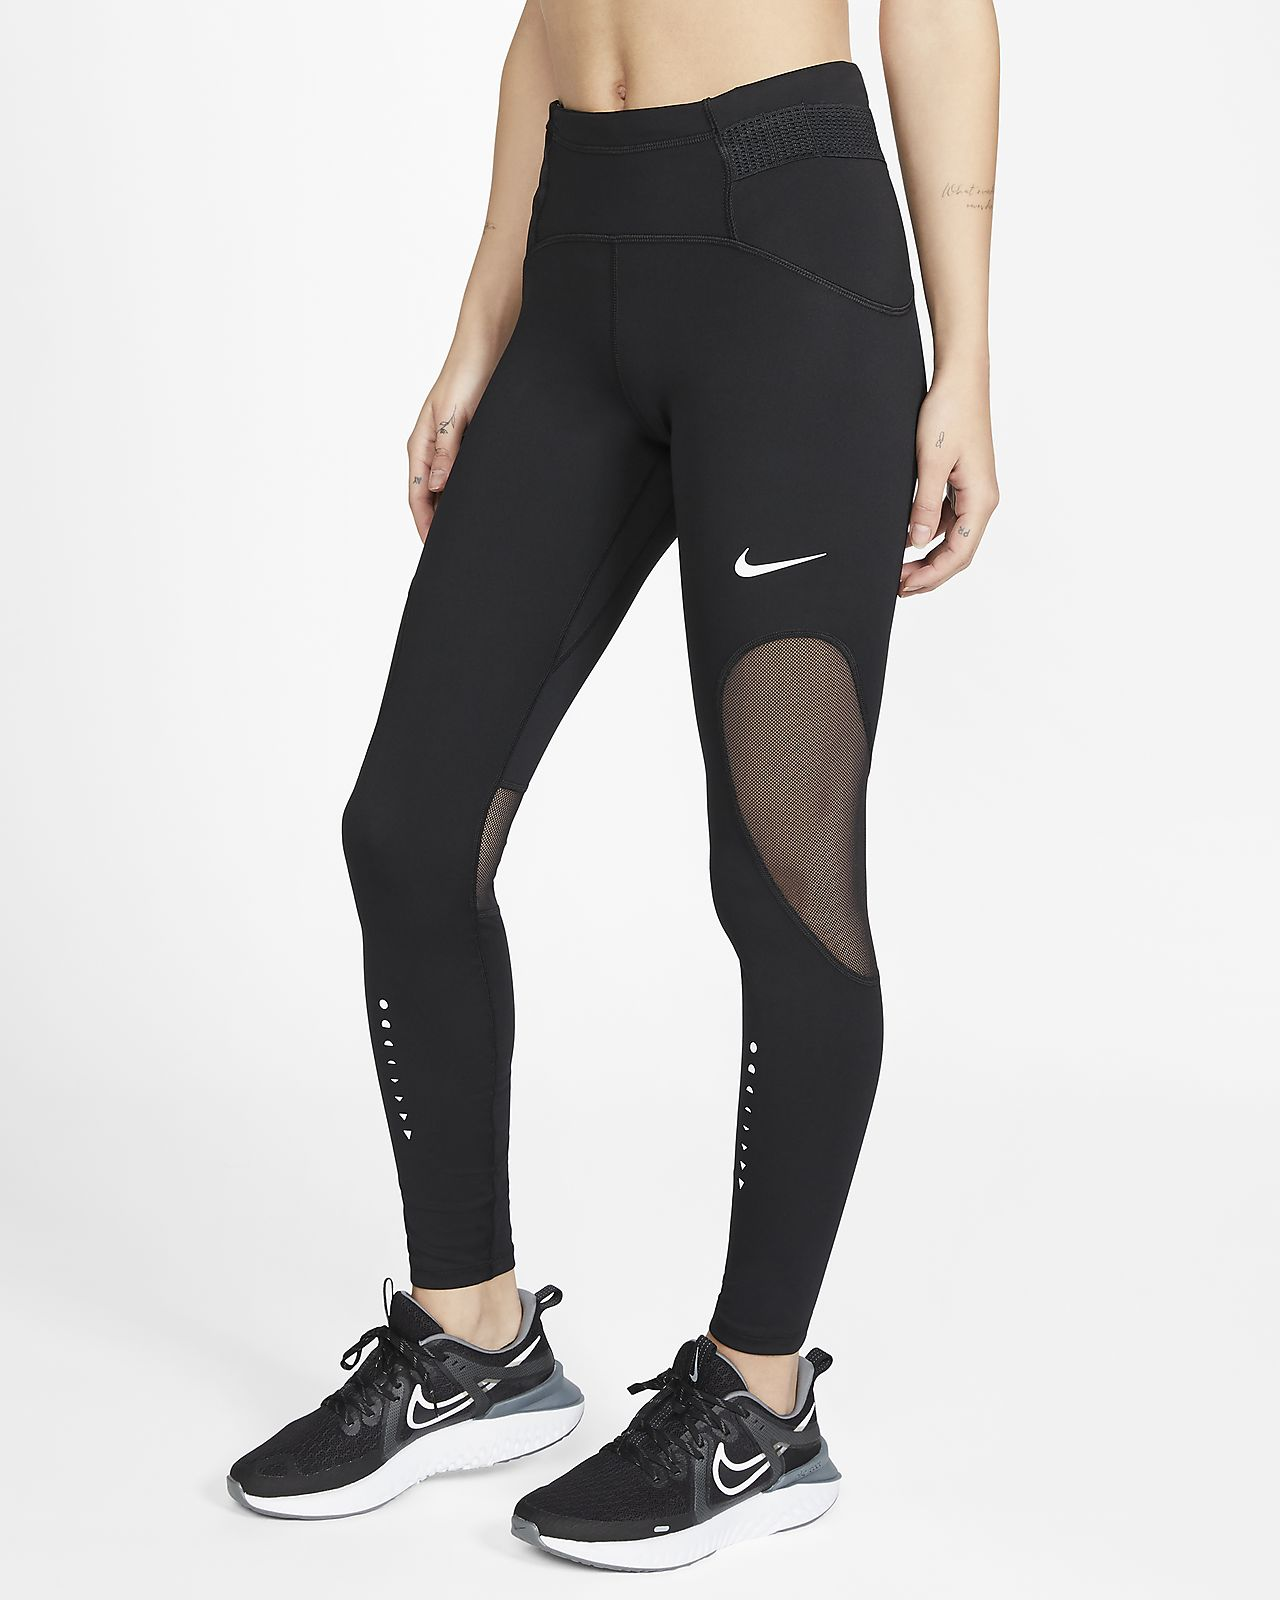 Legging de running 7/8 Nike Speed Icon Clash pour Femme